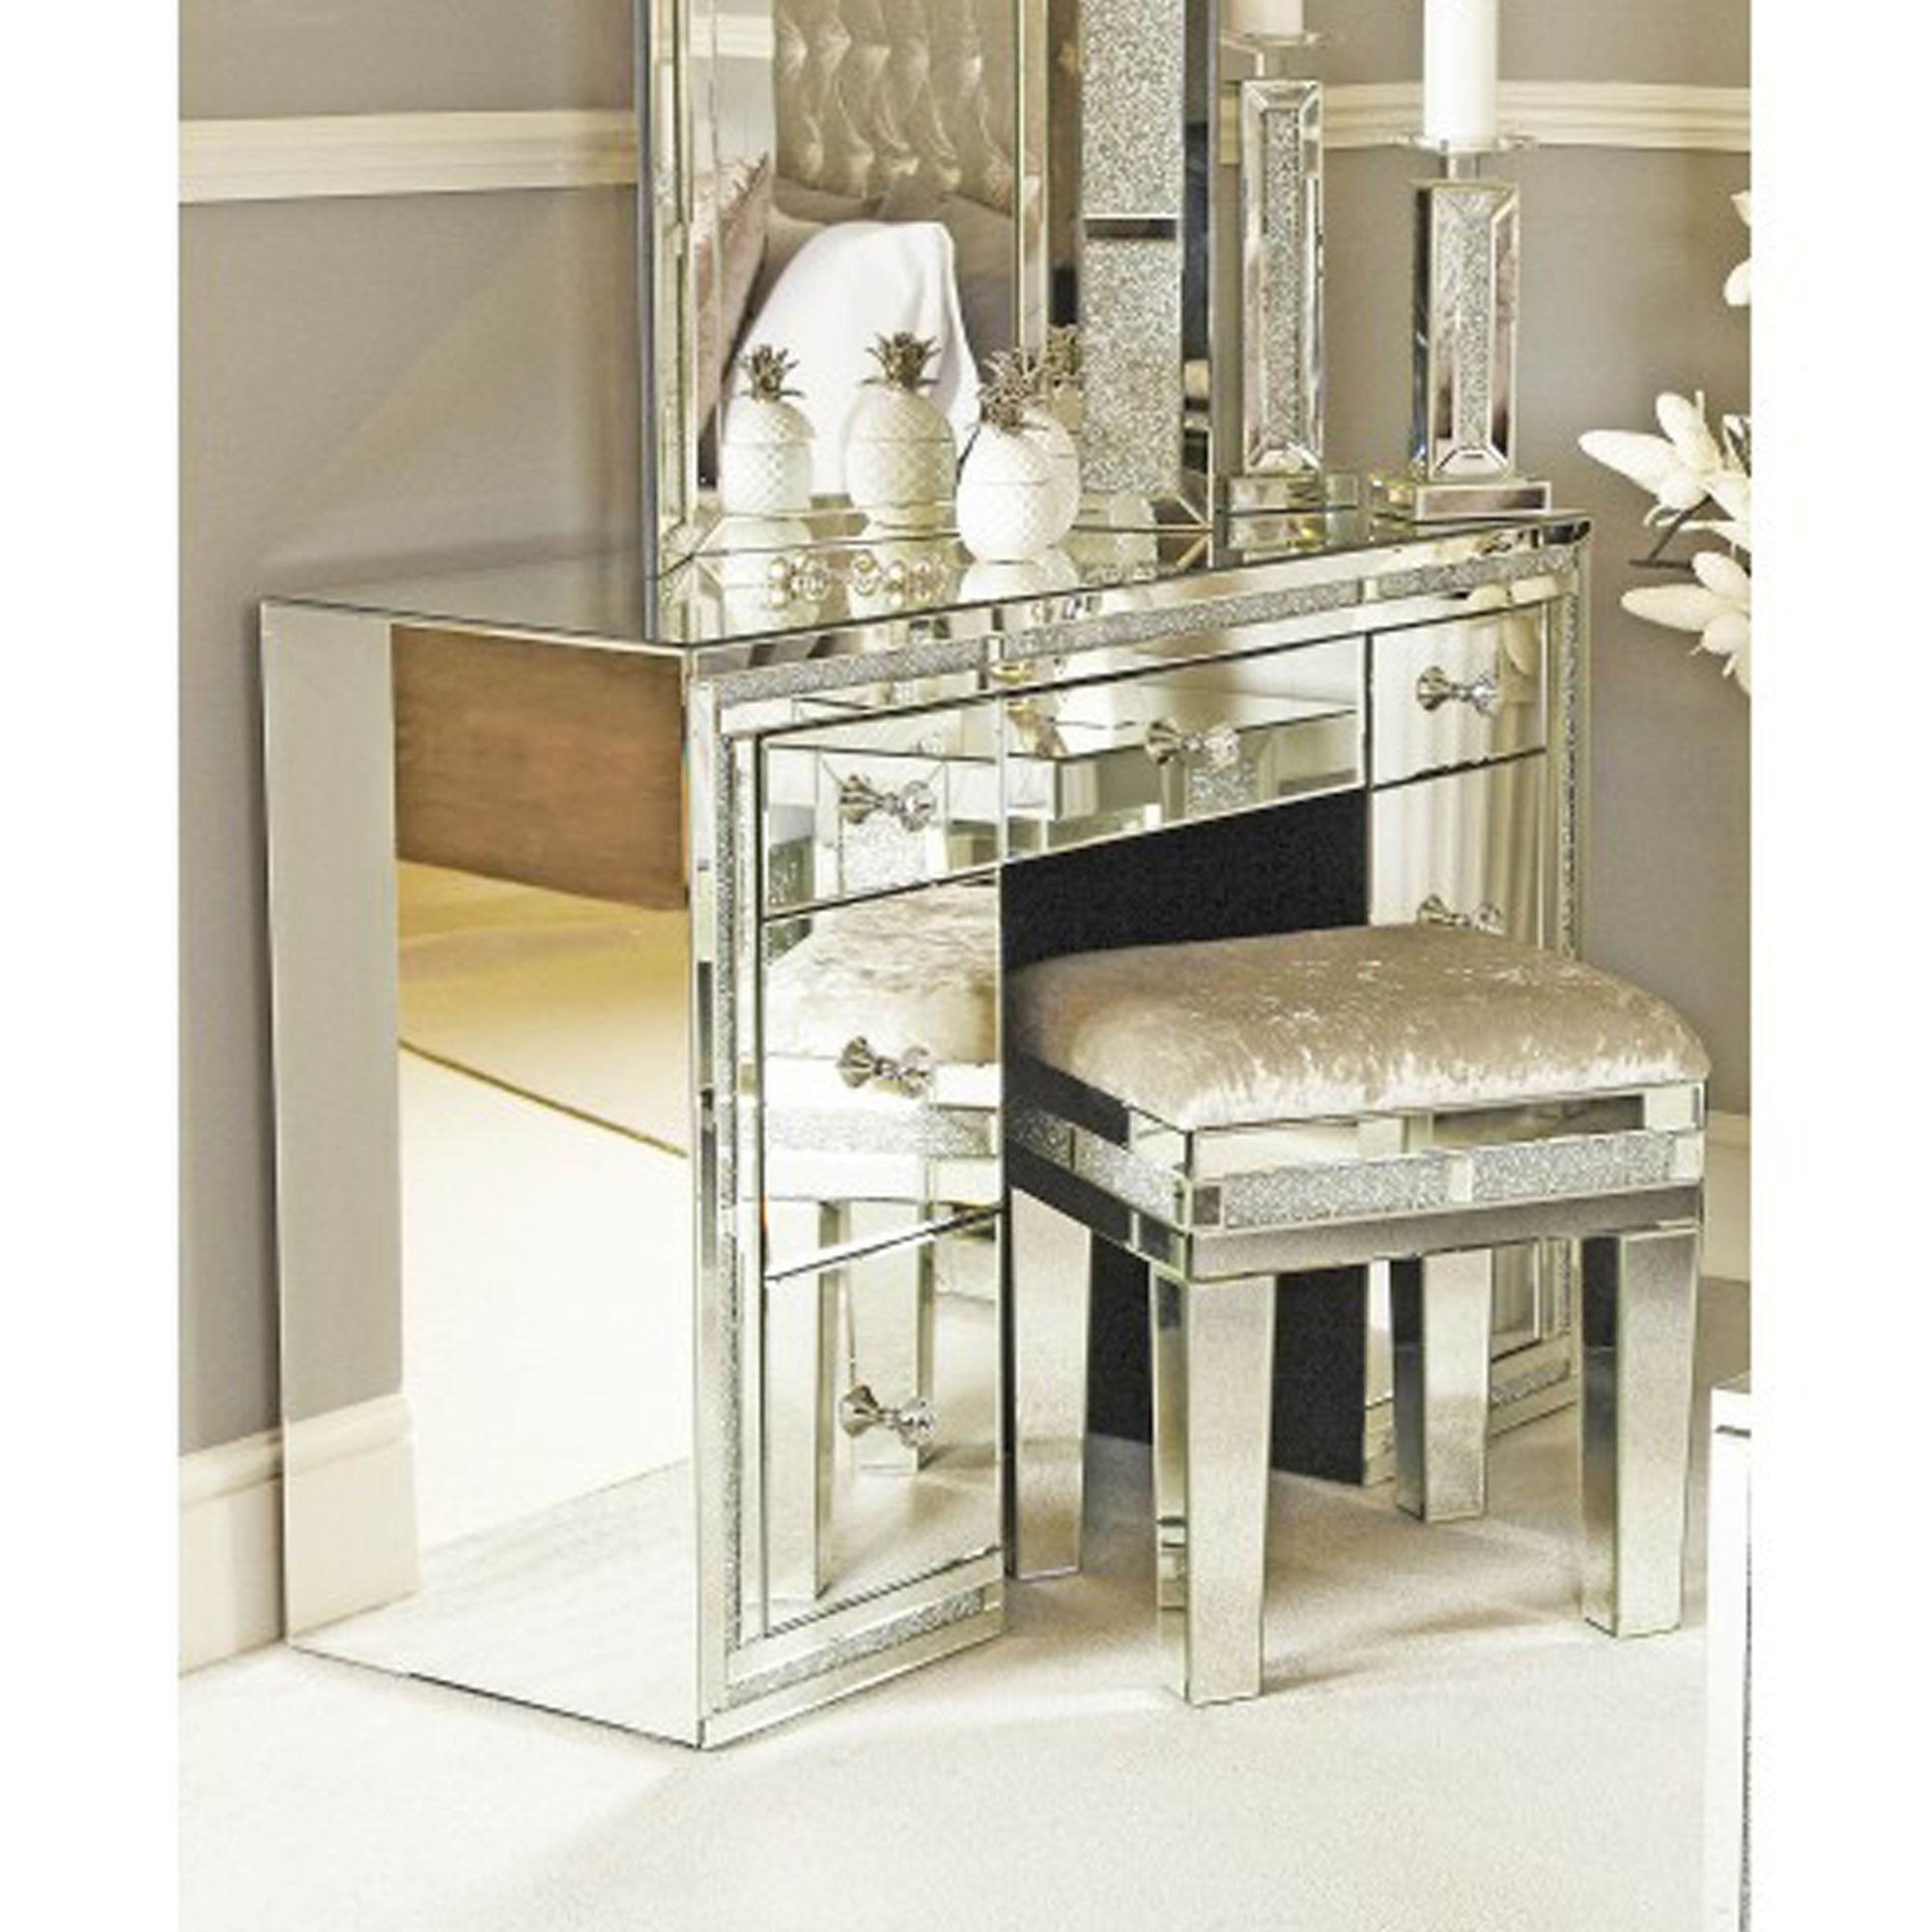 Mirror 7 Drawer Dressing Table Mirrored Furniture Dressing Tables